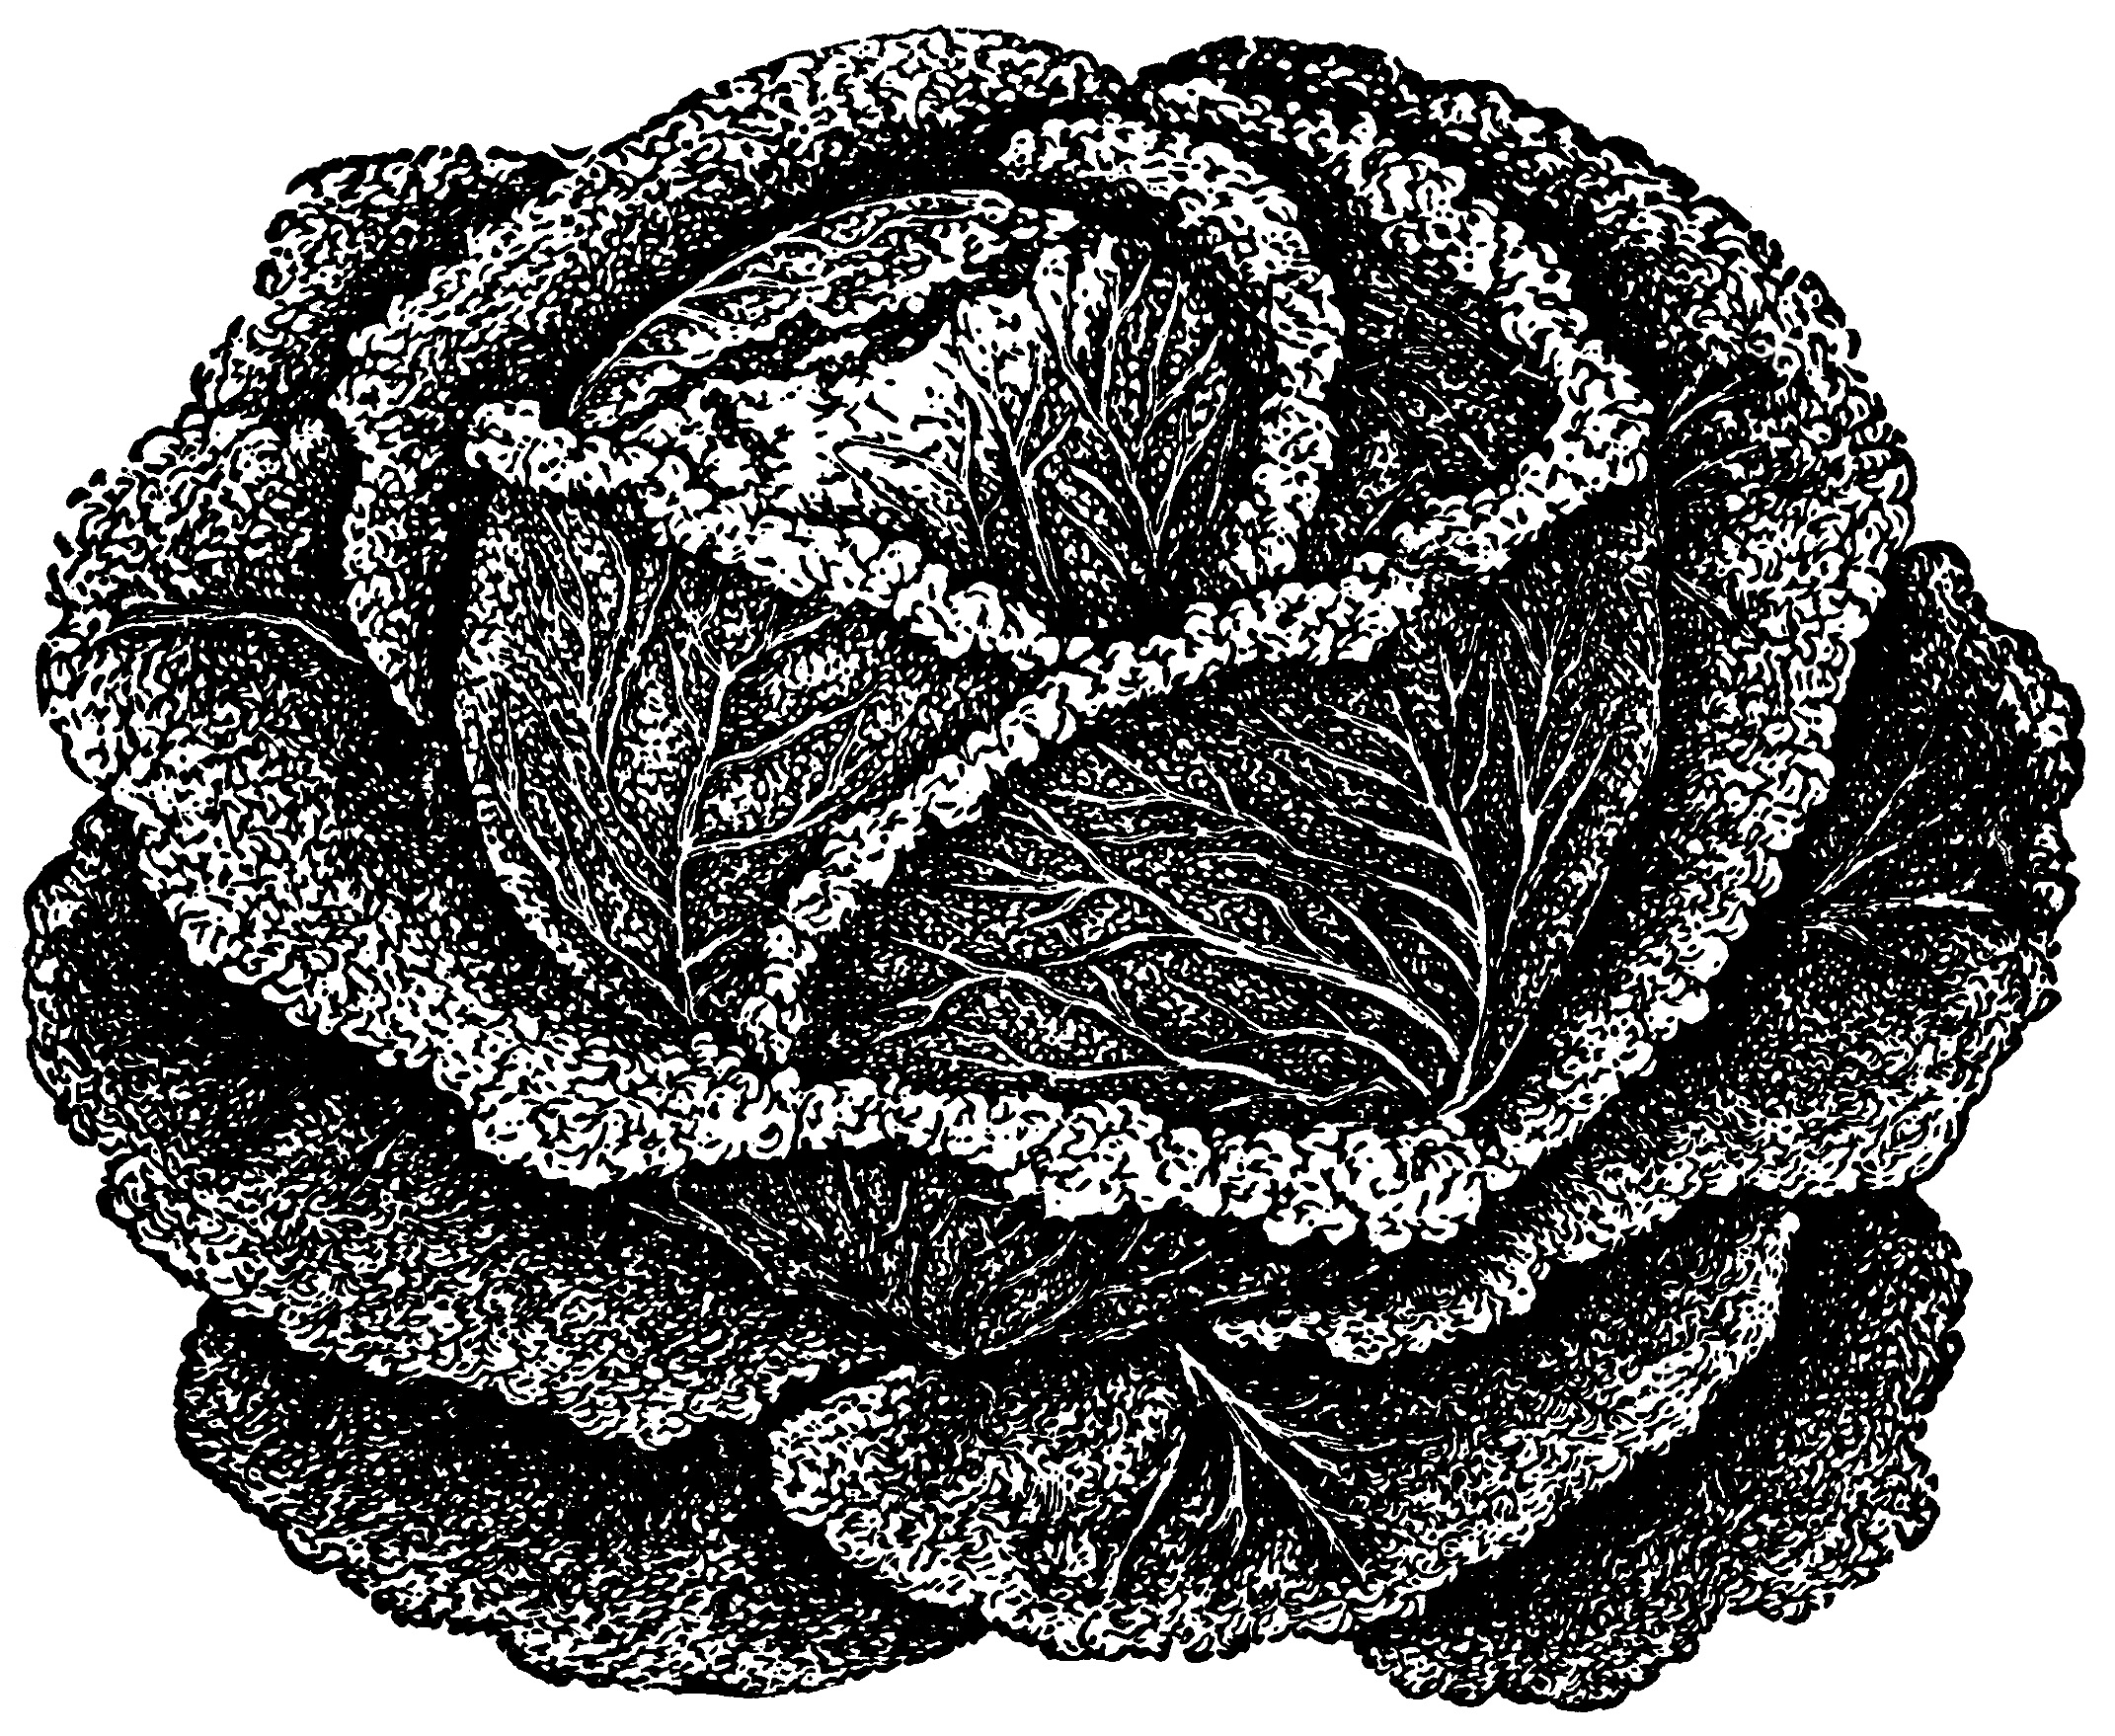 Clip art old design. Cabbage clipart black and white